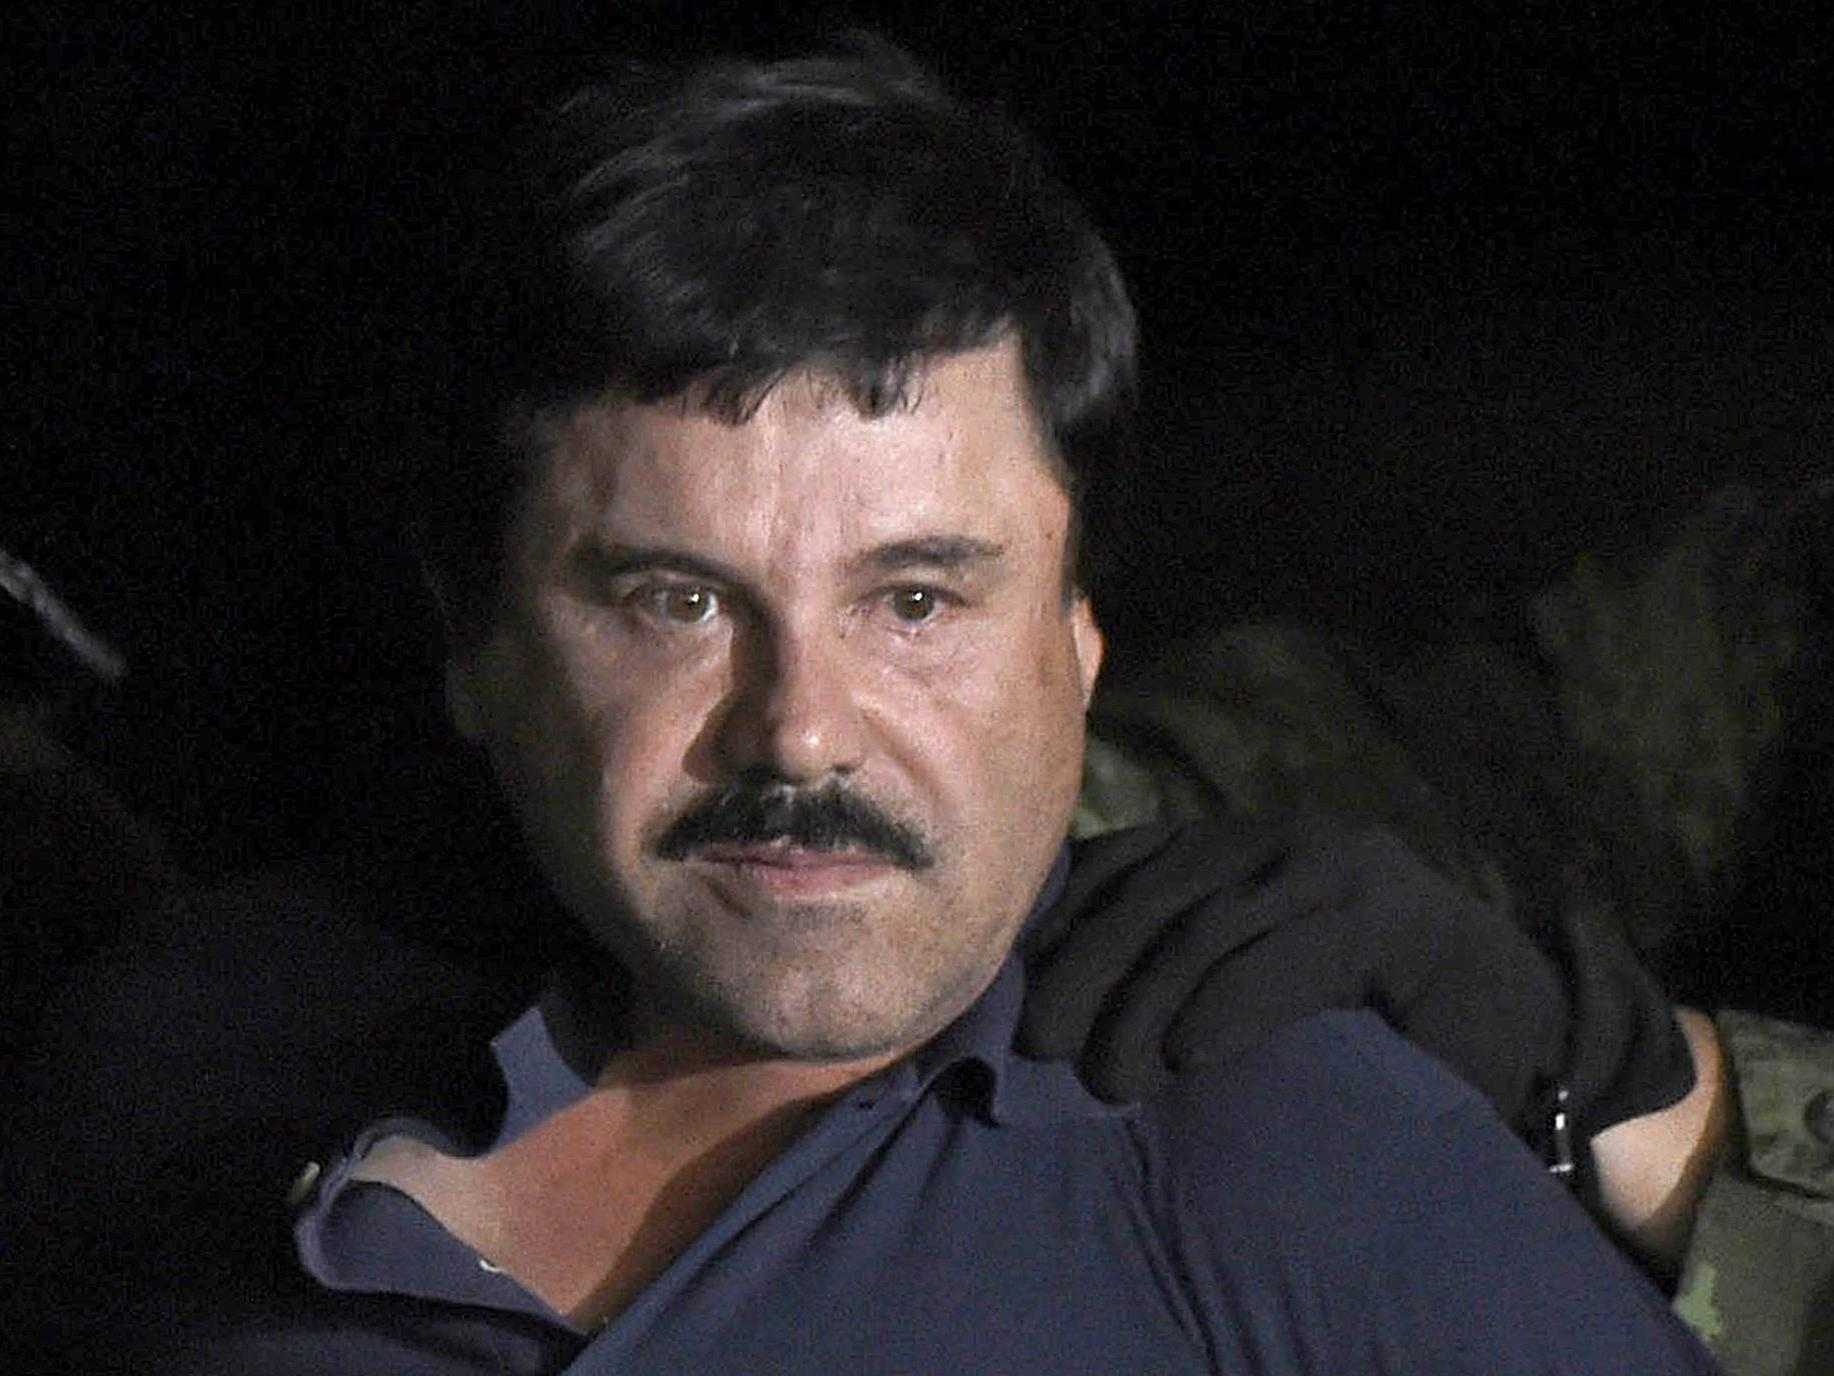 Feds want to seize $12.6 billion in drug money from 'El Chapo'